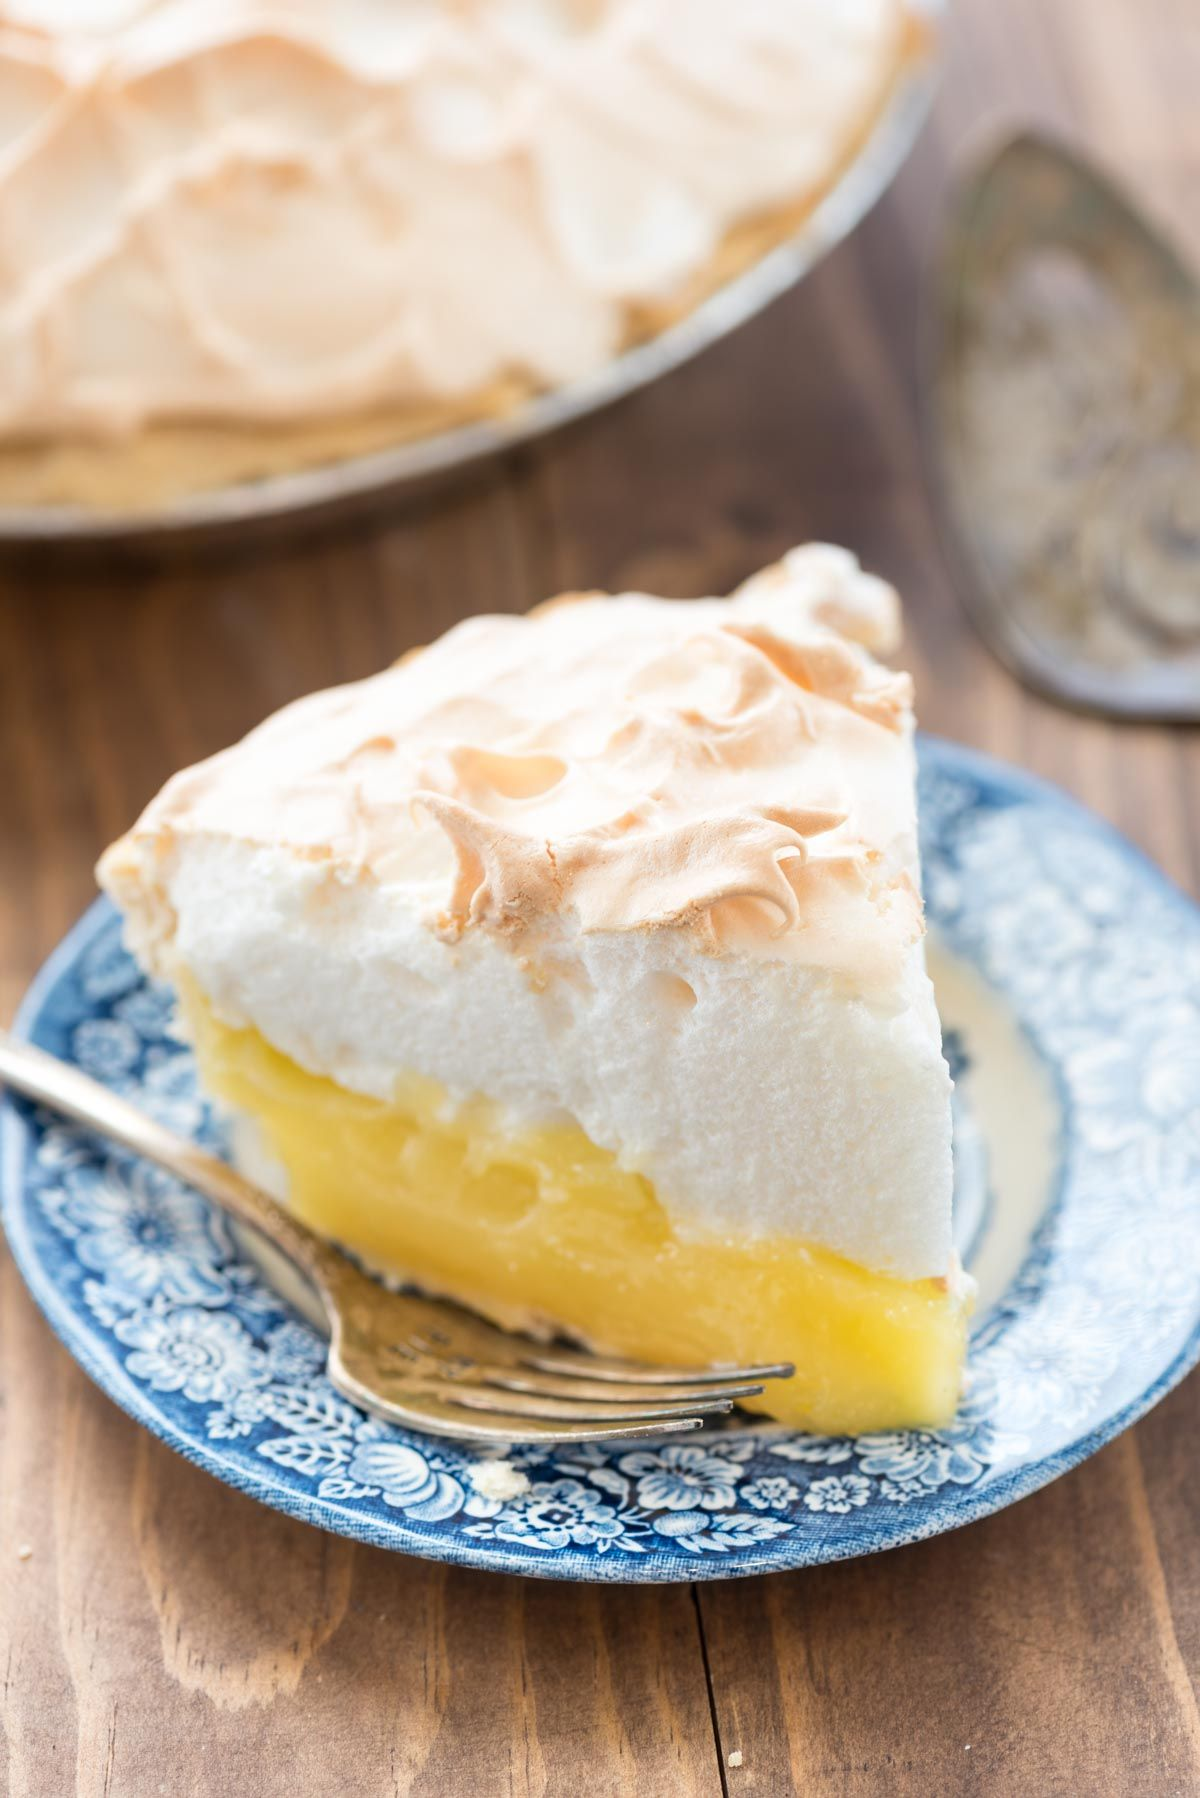 Aunt Tootsie's Lemon Meringue Pie - this recipe is from my great aunt and it is a family favorite! The lemon is sweet and tart and the pie is perfect lemon lovers! #lemonmeringuepie